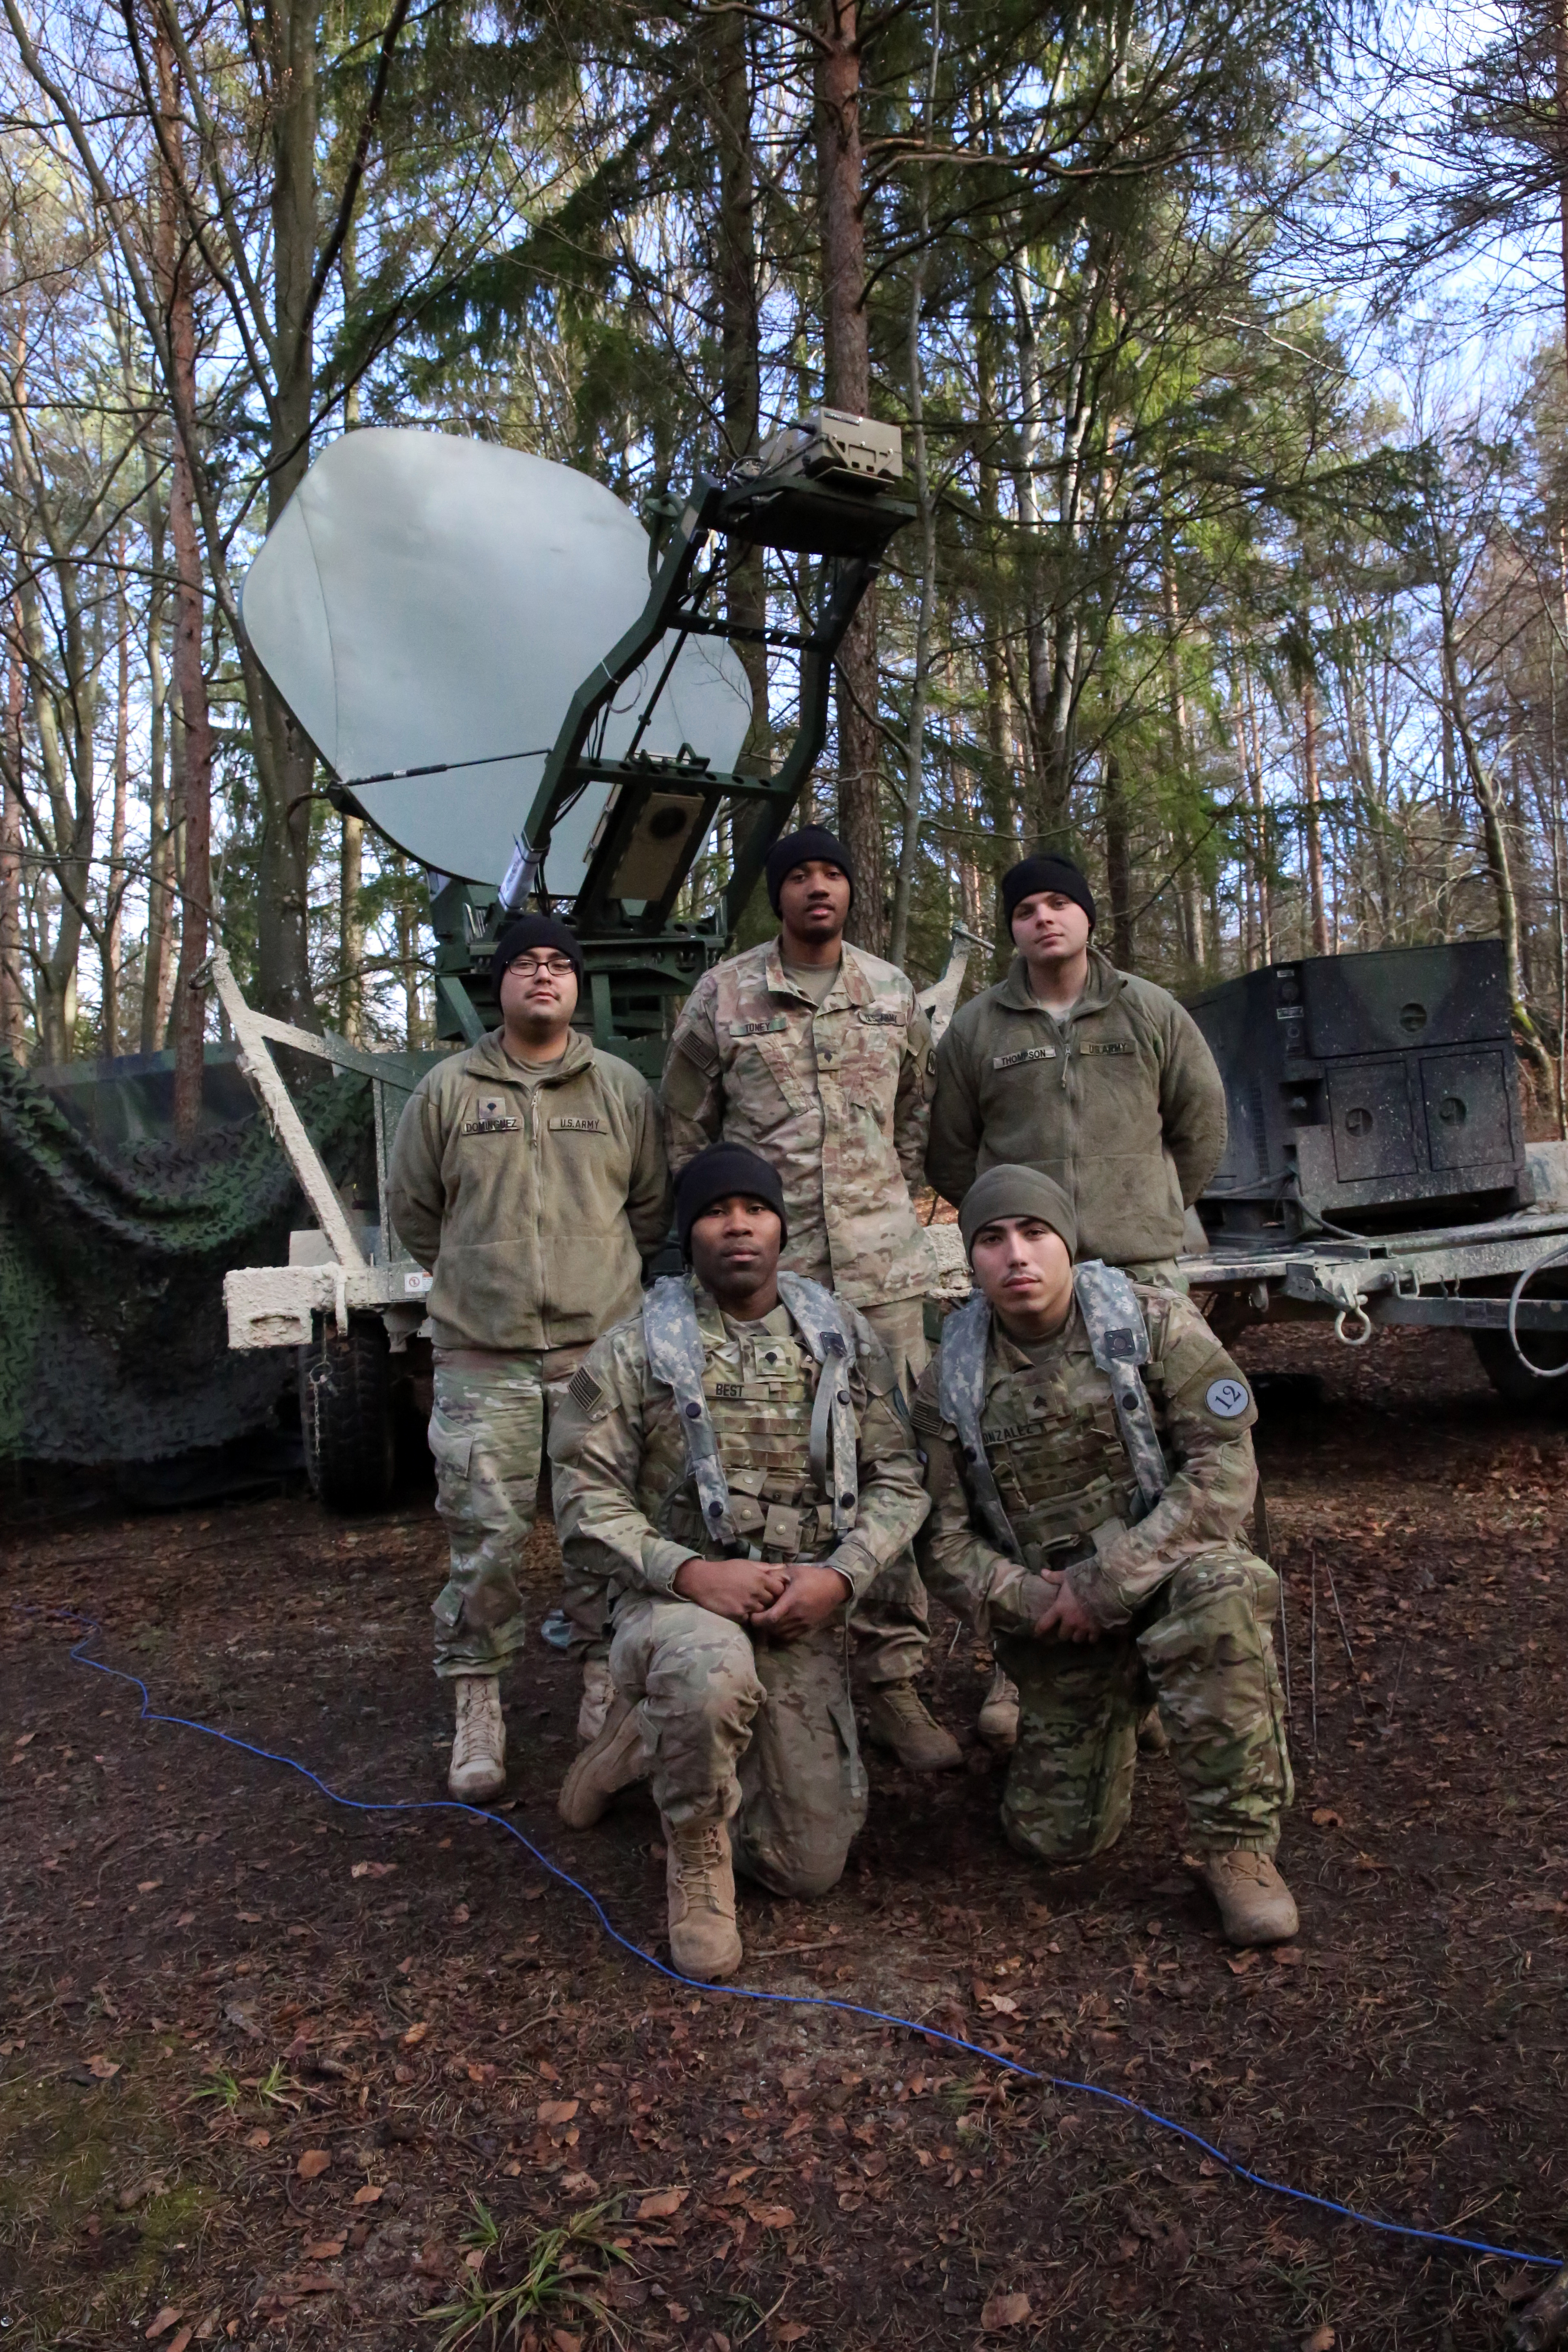 U.S. Army Soldiers assigned to Charlie Company, 44th Expeditionary Signal Battalion, 2nd Theater Signal Brigade, pose for a picture during exercise Allied Spirit VIII, Jan. 31, 2018 in the Hohenfels Training Area, Germany. The Soldiers operate a command post node providing communications and network support to Poland's 12th Mechanized Brigade, the multinational brigade headquarters for the exercise. (U.S. Army photo by William B. King)